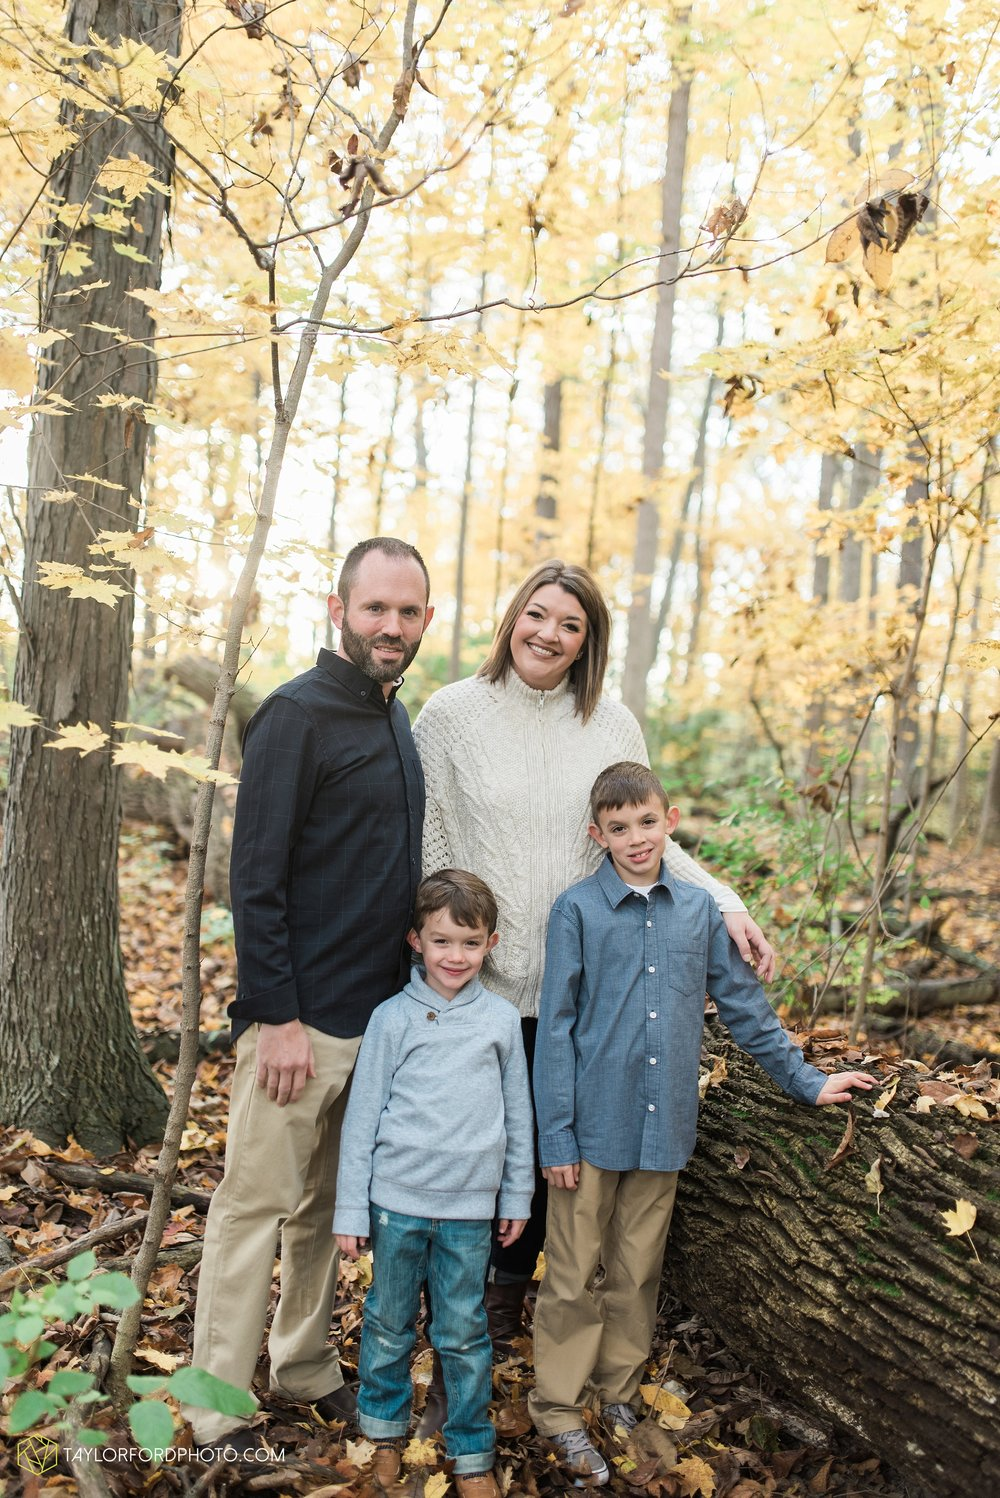 van-wert-ohio-family-photographer-heistand-woods-fall-Taylor-Ford-Photography_6281.jpg